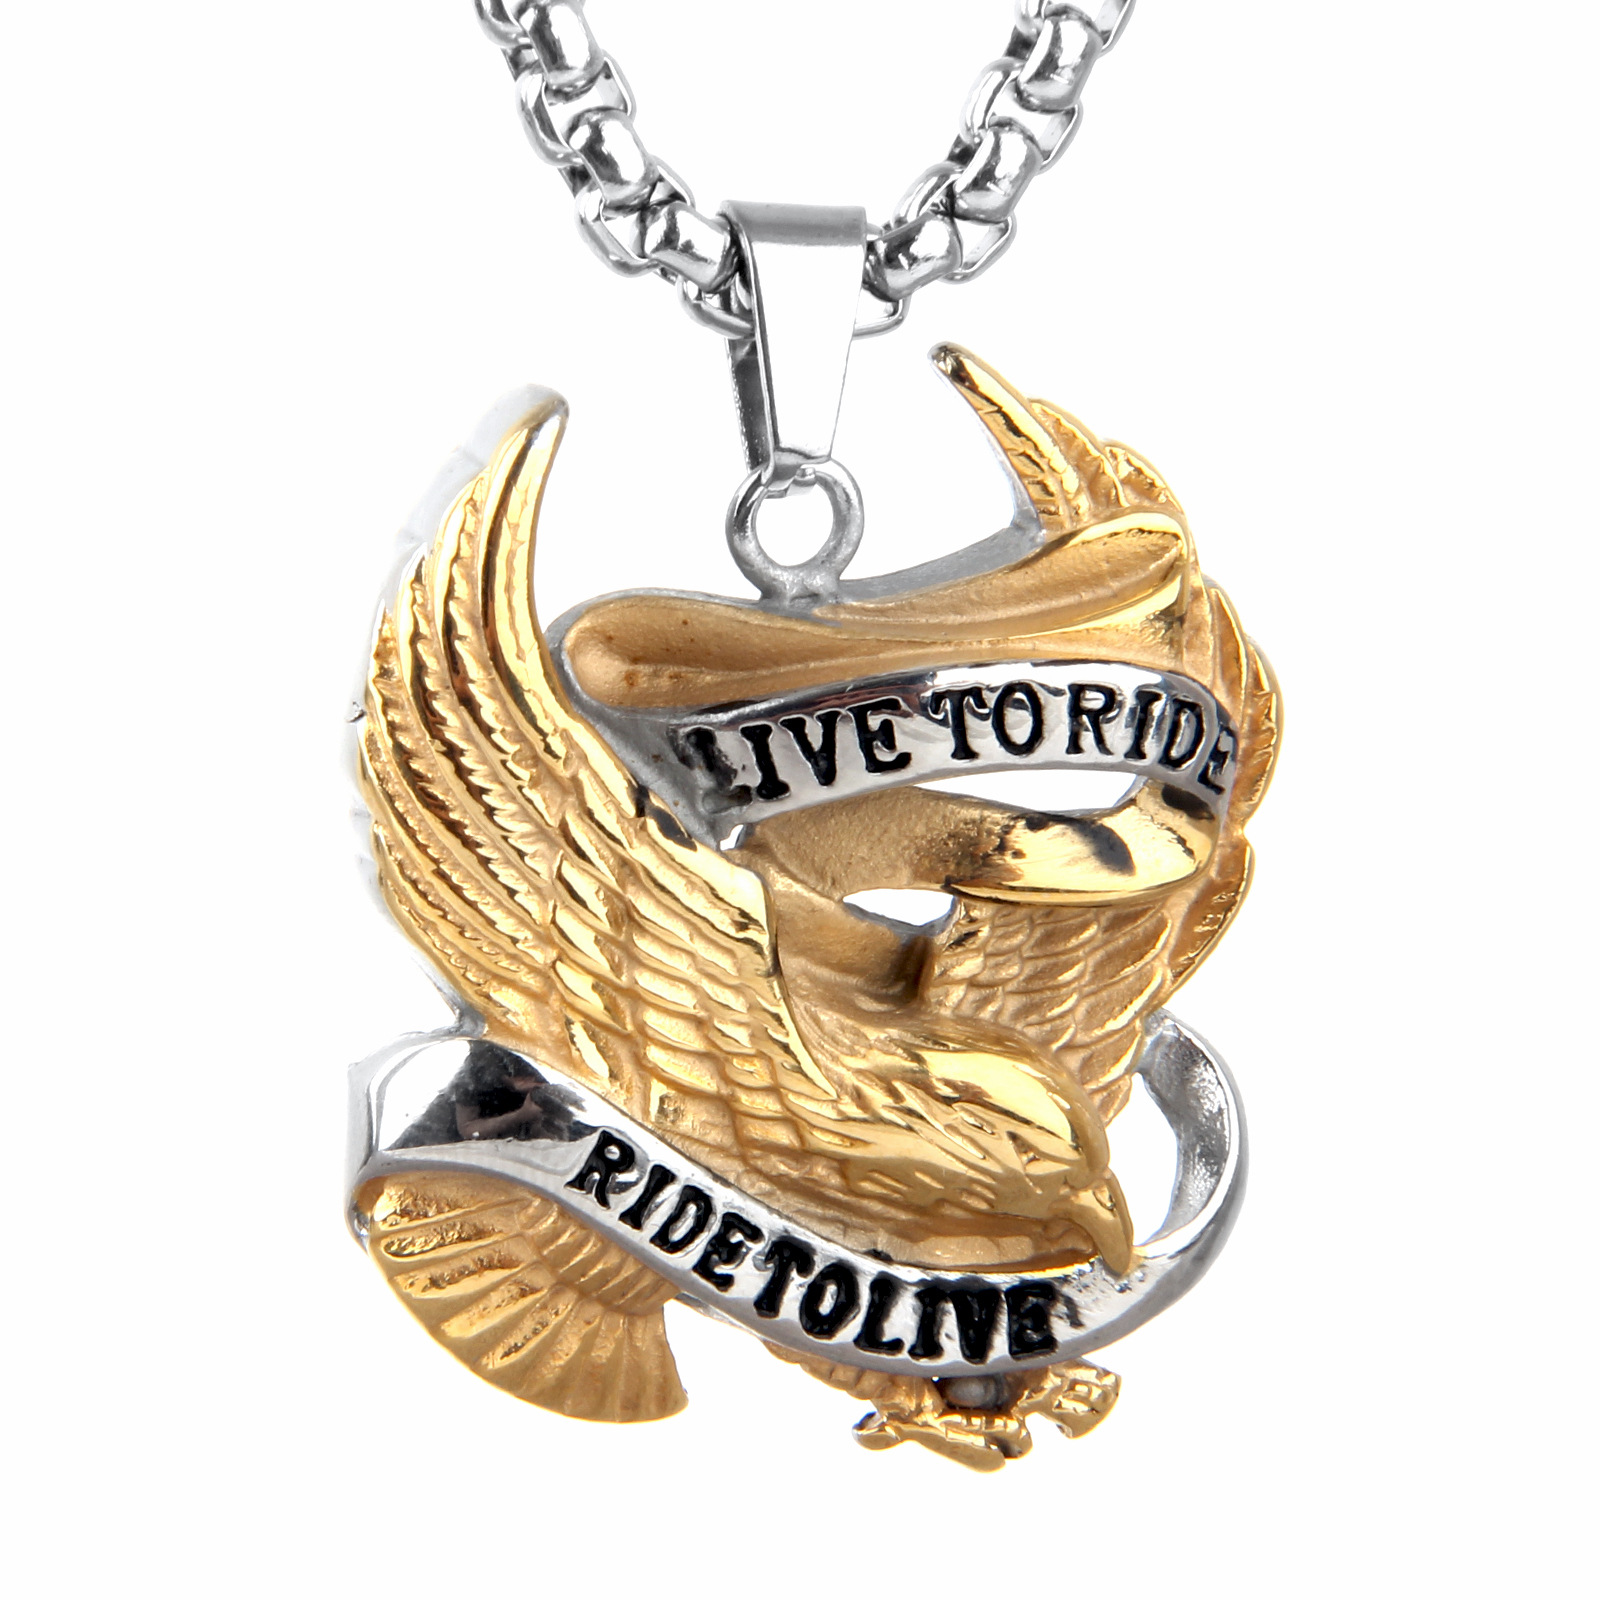 me on jewellery pewter amazon fine co uk eagle tread don pendant jewelry dp llords t necklace